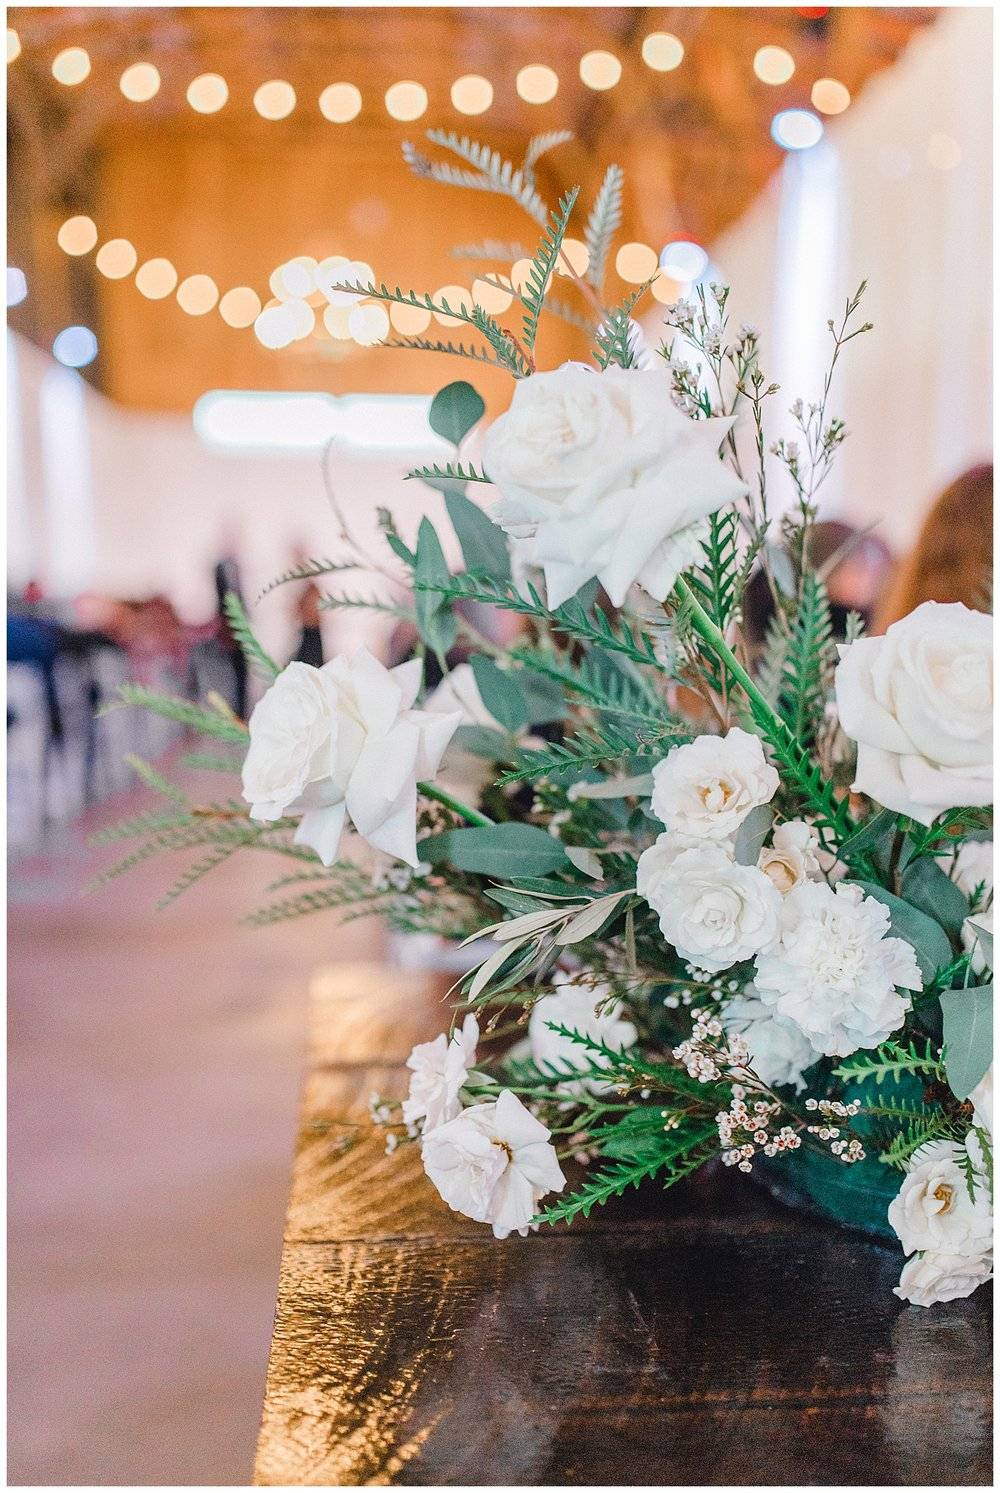 ERC-8213_A beautiful winter wedding in Snohomish, Washington at Thomas Family Farm was simply perfect.  This rustic and modern styled wedding was dripping with romance and photographed by Emma Rose Company, a pacific northwest wedding photographer..jpg